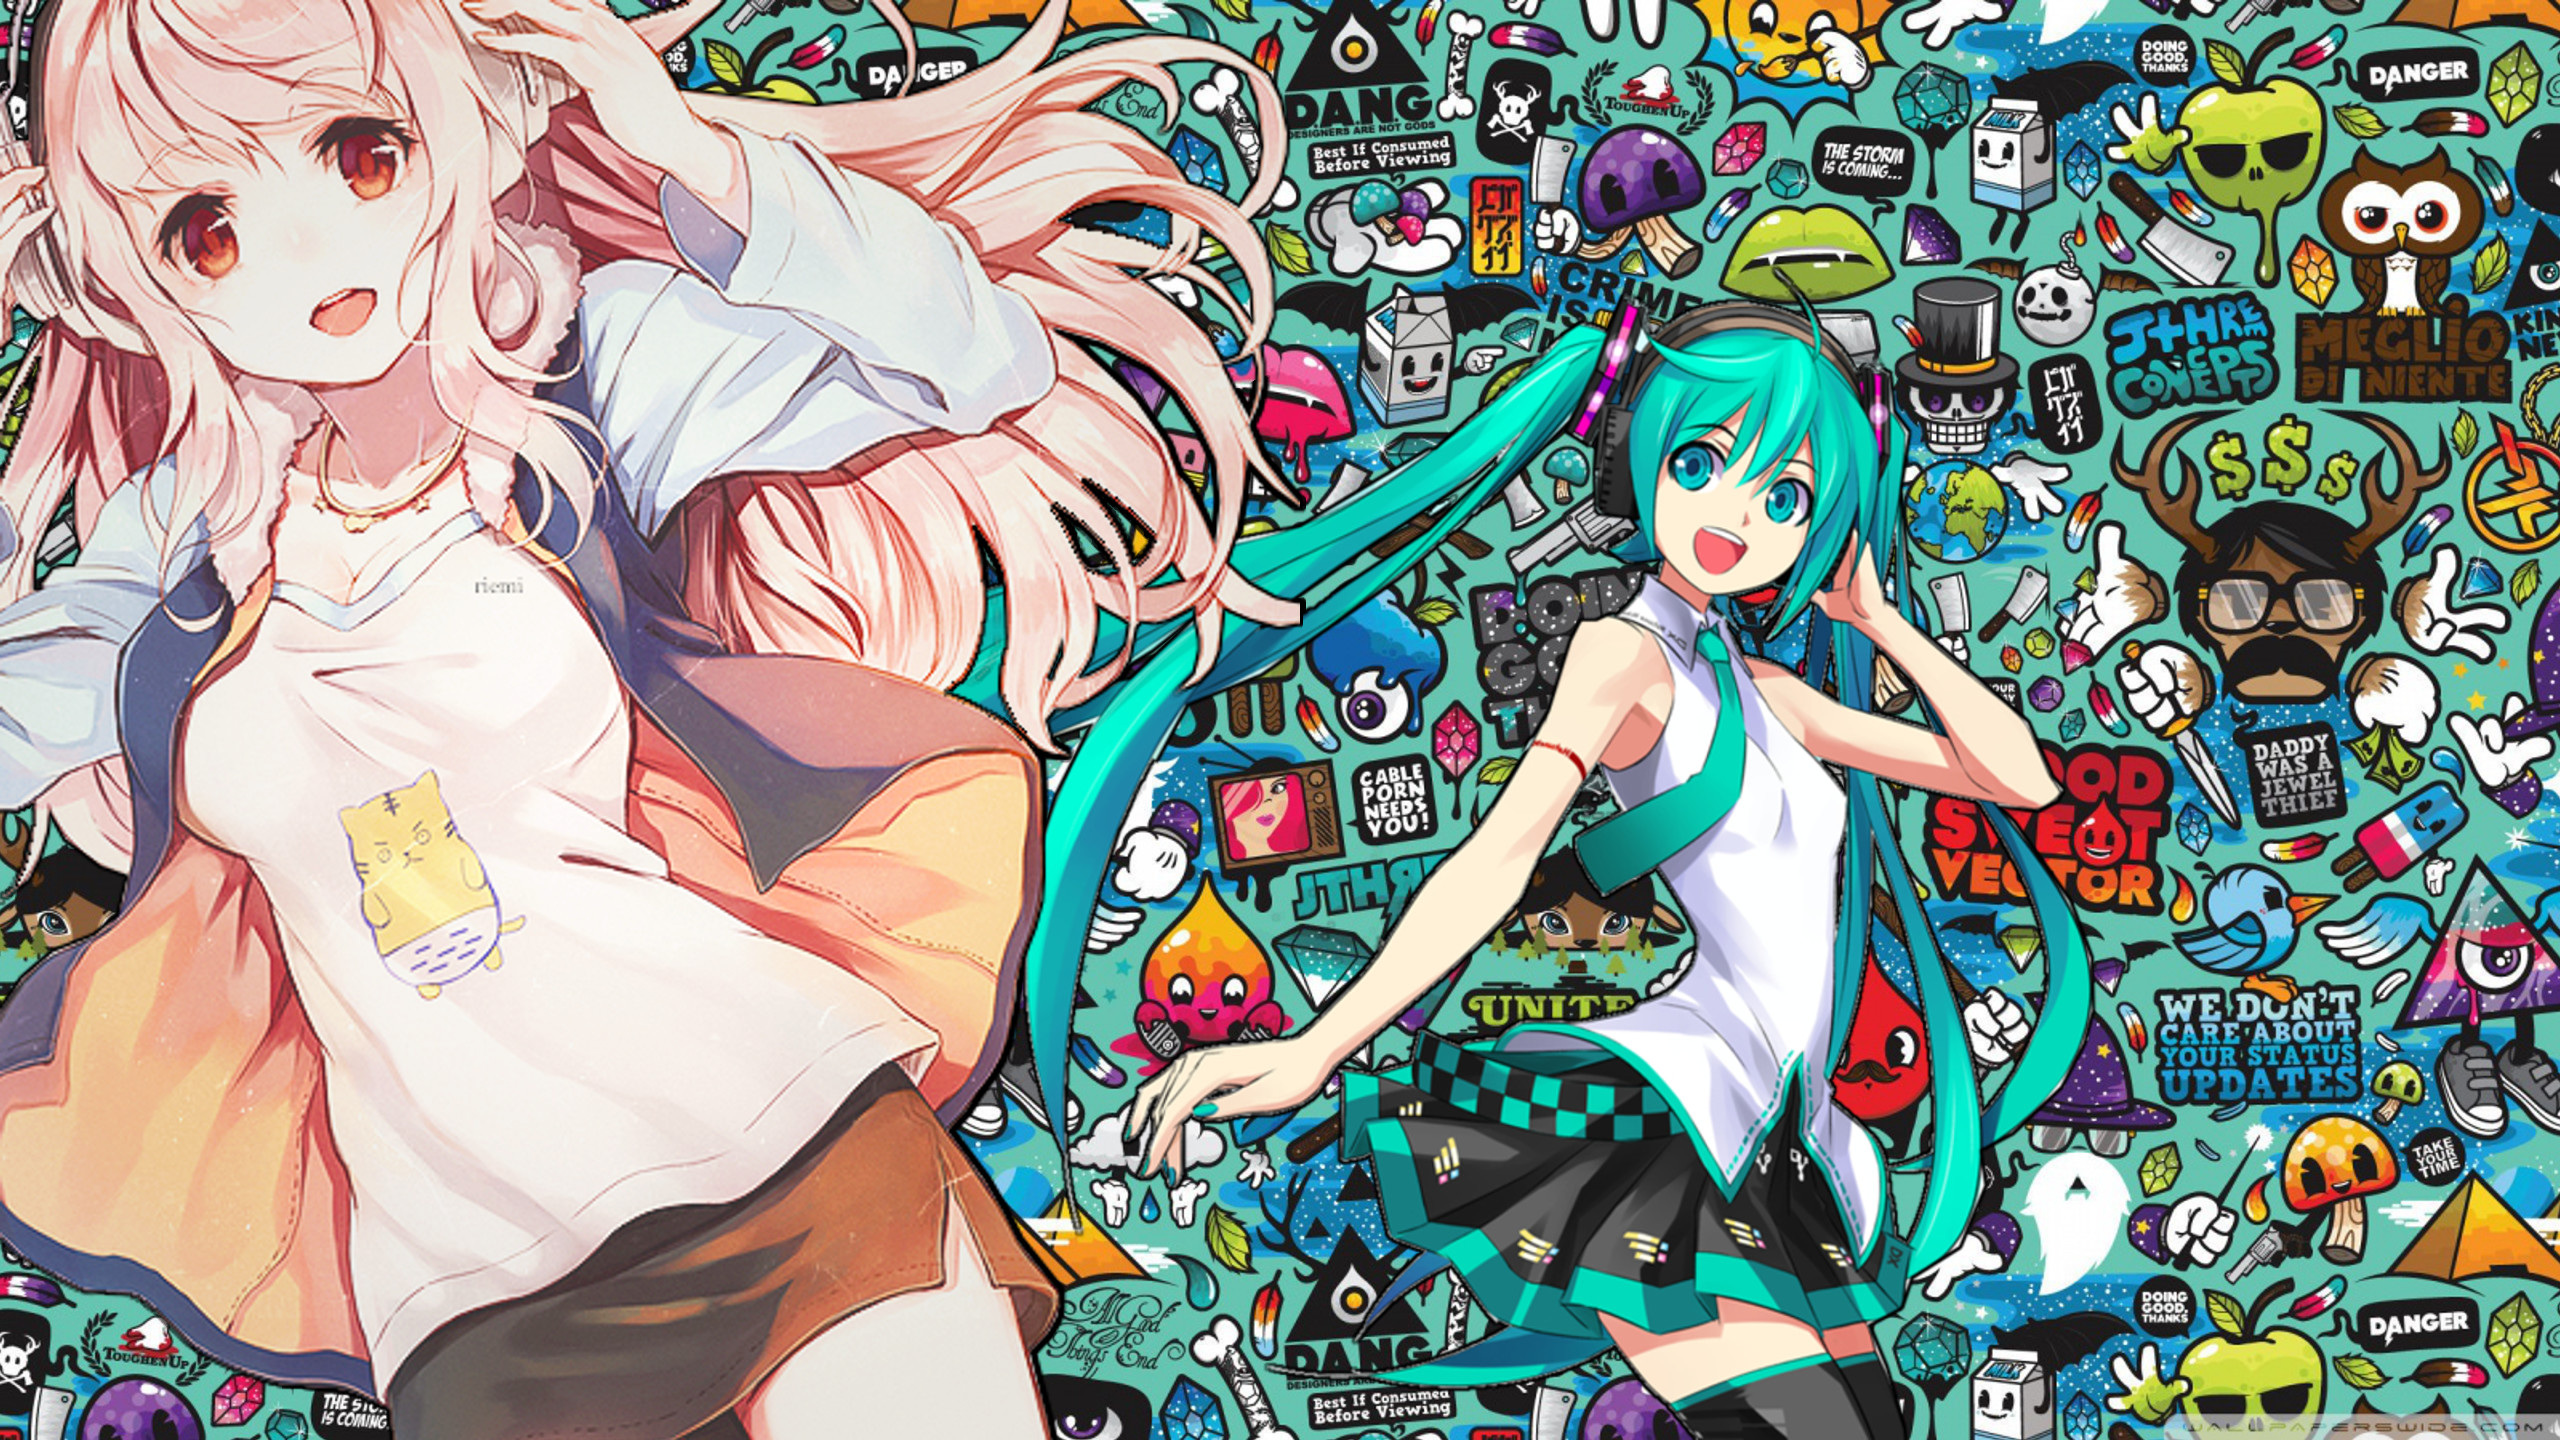 2560x1440 ... Hatsune Miku and Super Sonico Wallpaper by zsuetam2000